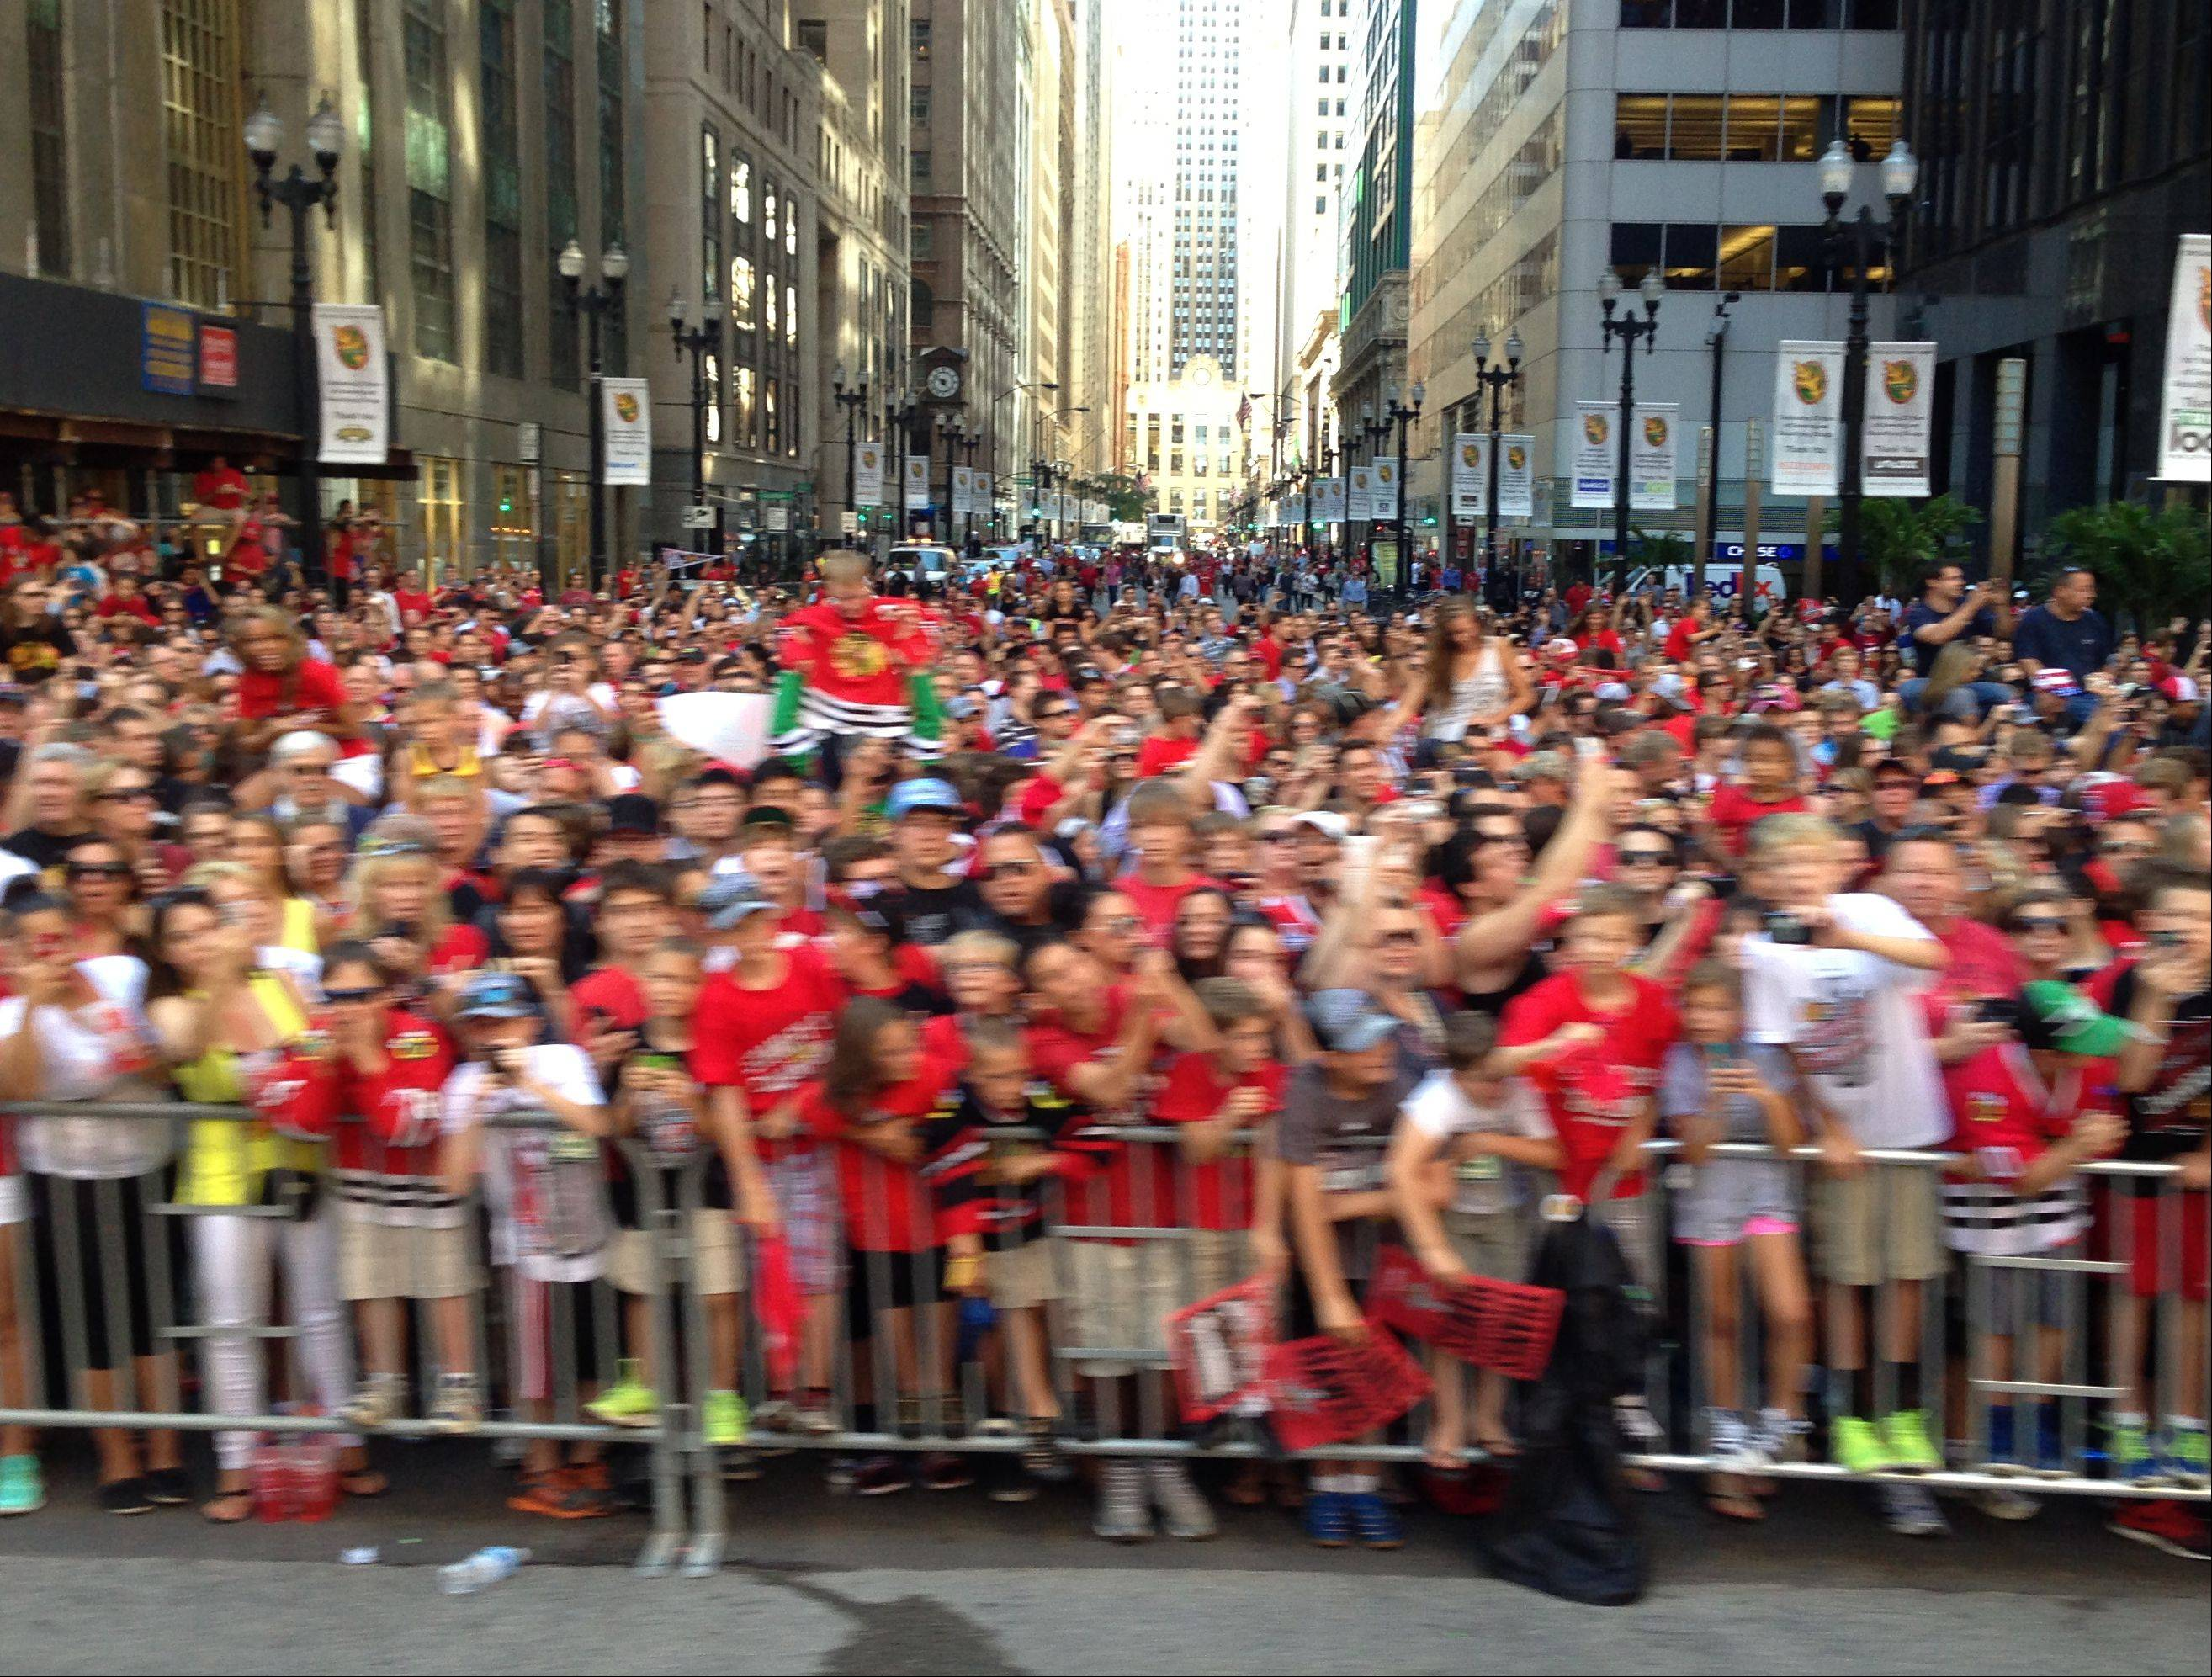 Fans along the Blackhawks parade route Friday morning as the buses head to Grant Park.